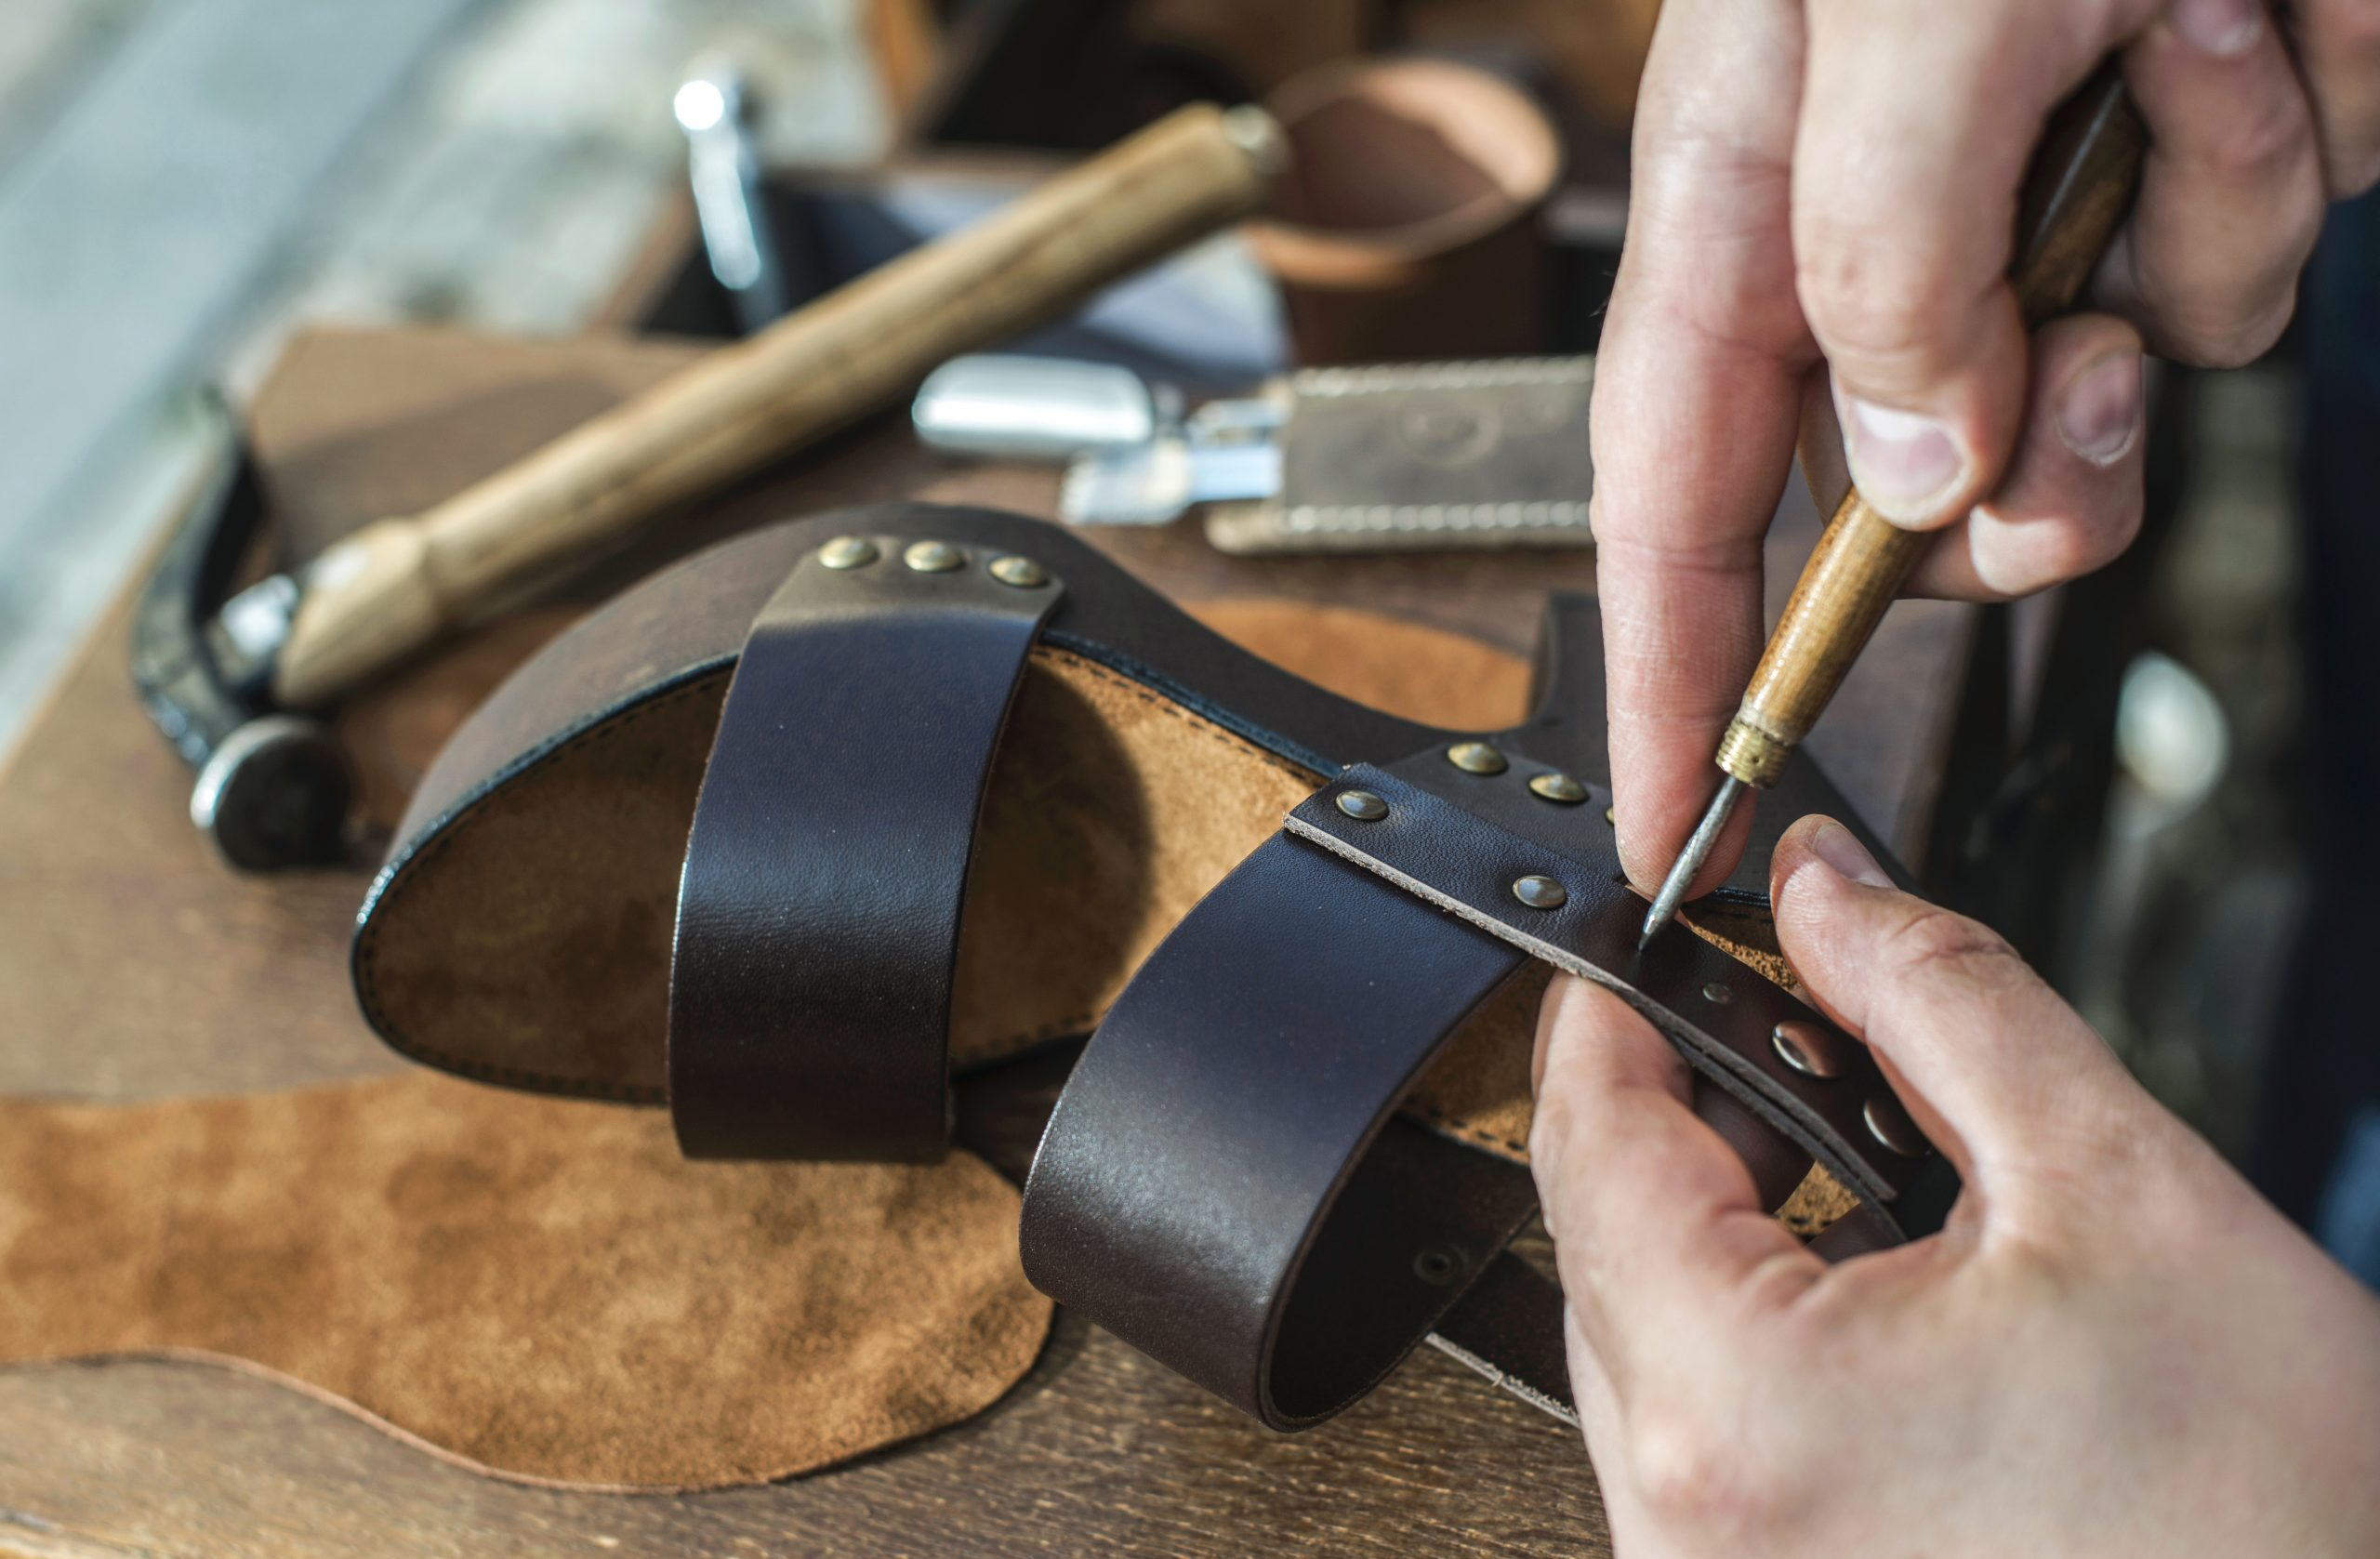 Making shoes.